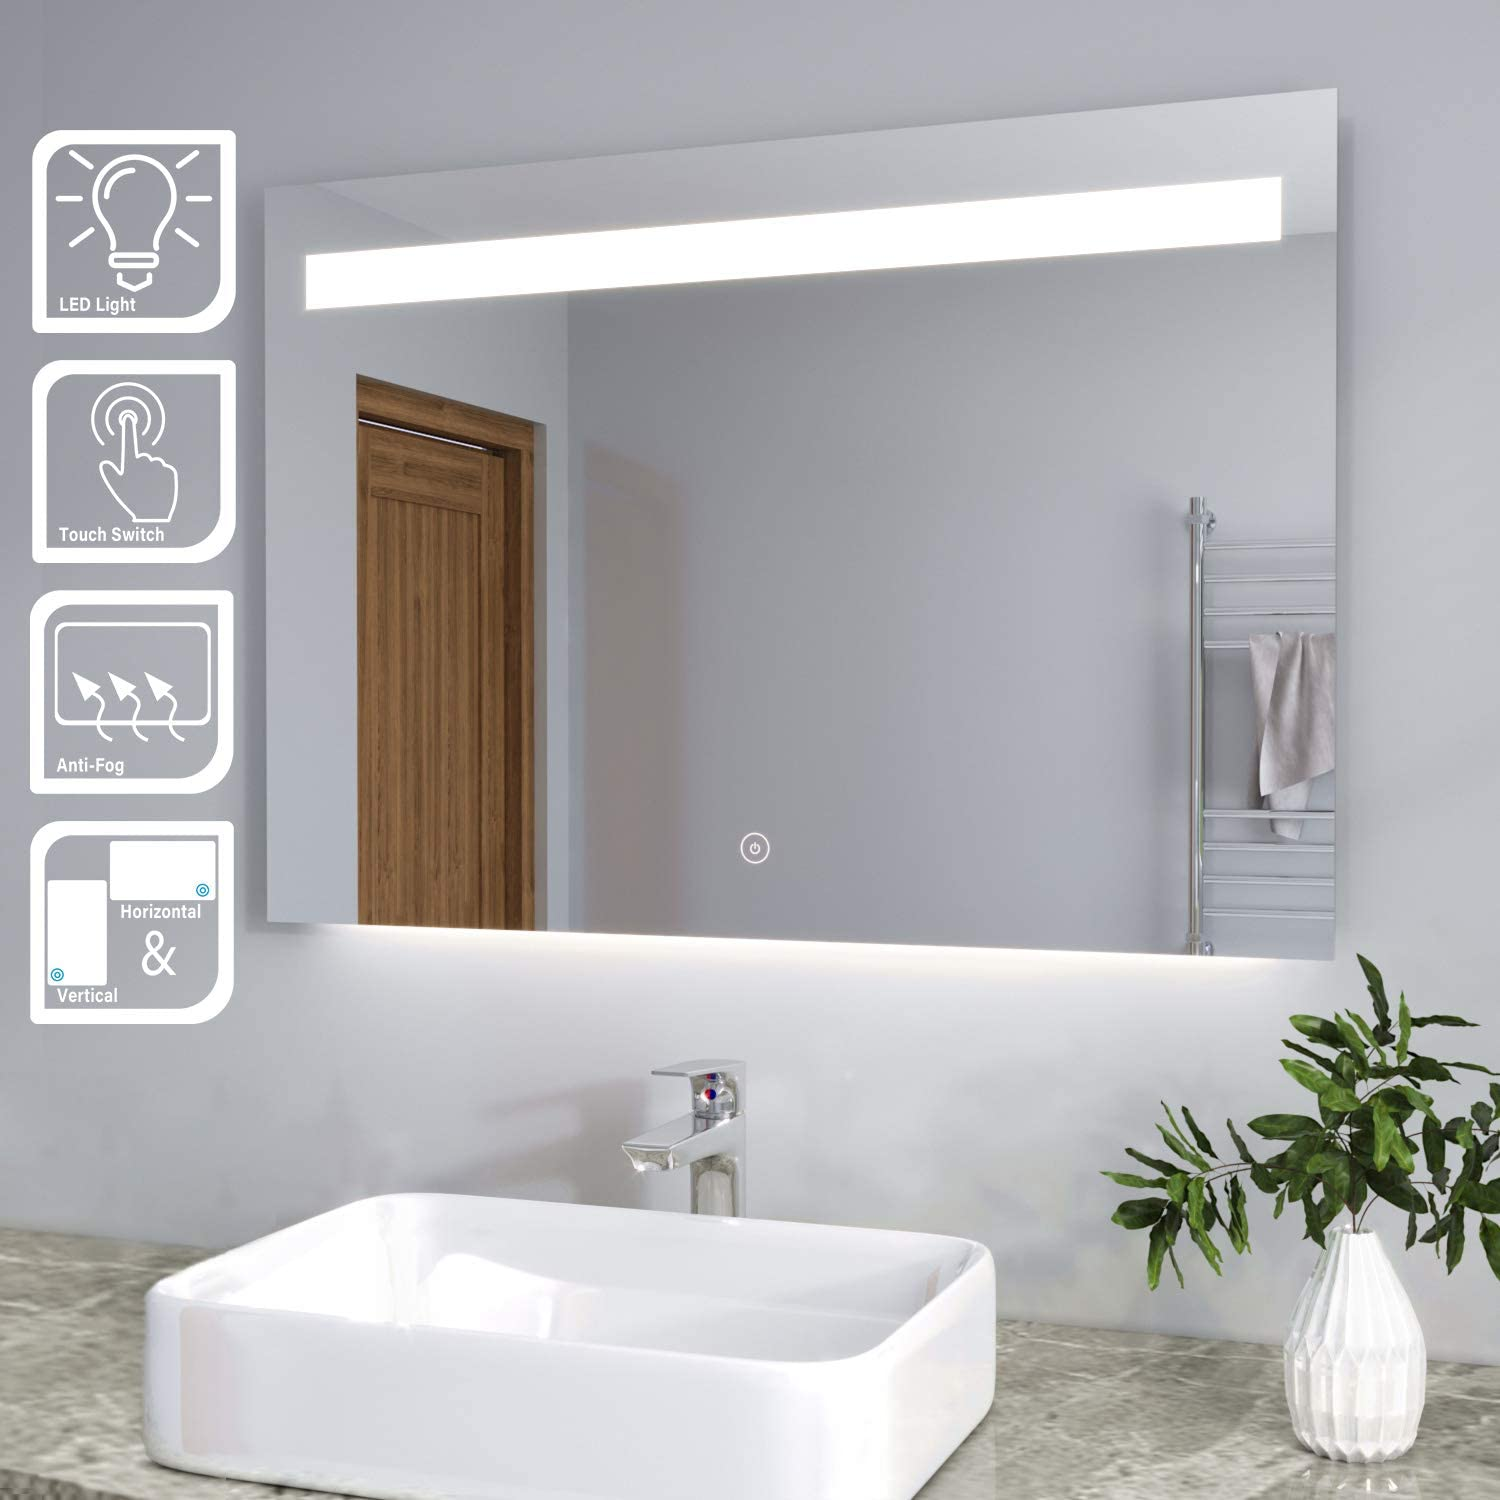 Elegant Modern Bathroom Mirrors Heated Backlit Led Illuminated Wall Mounted Mirror With Light And Additional Features Demister And Sensor Ip44 Rated 1000 X 700 Mm Amazon Co Uk Kitchen Home